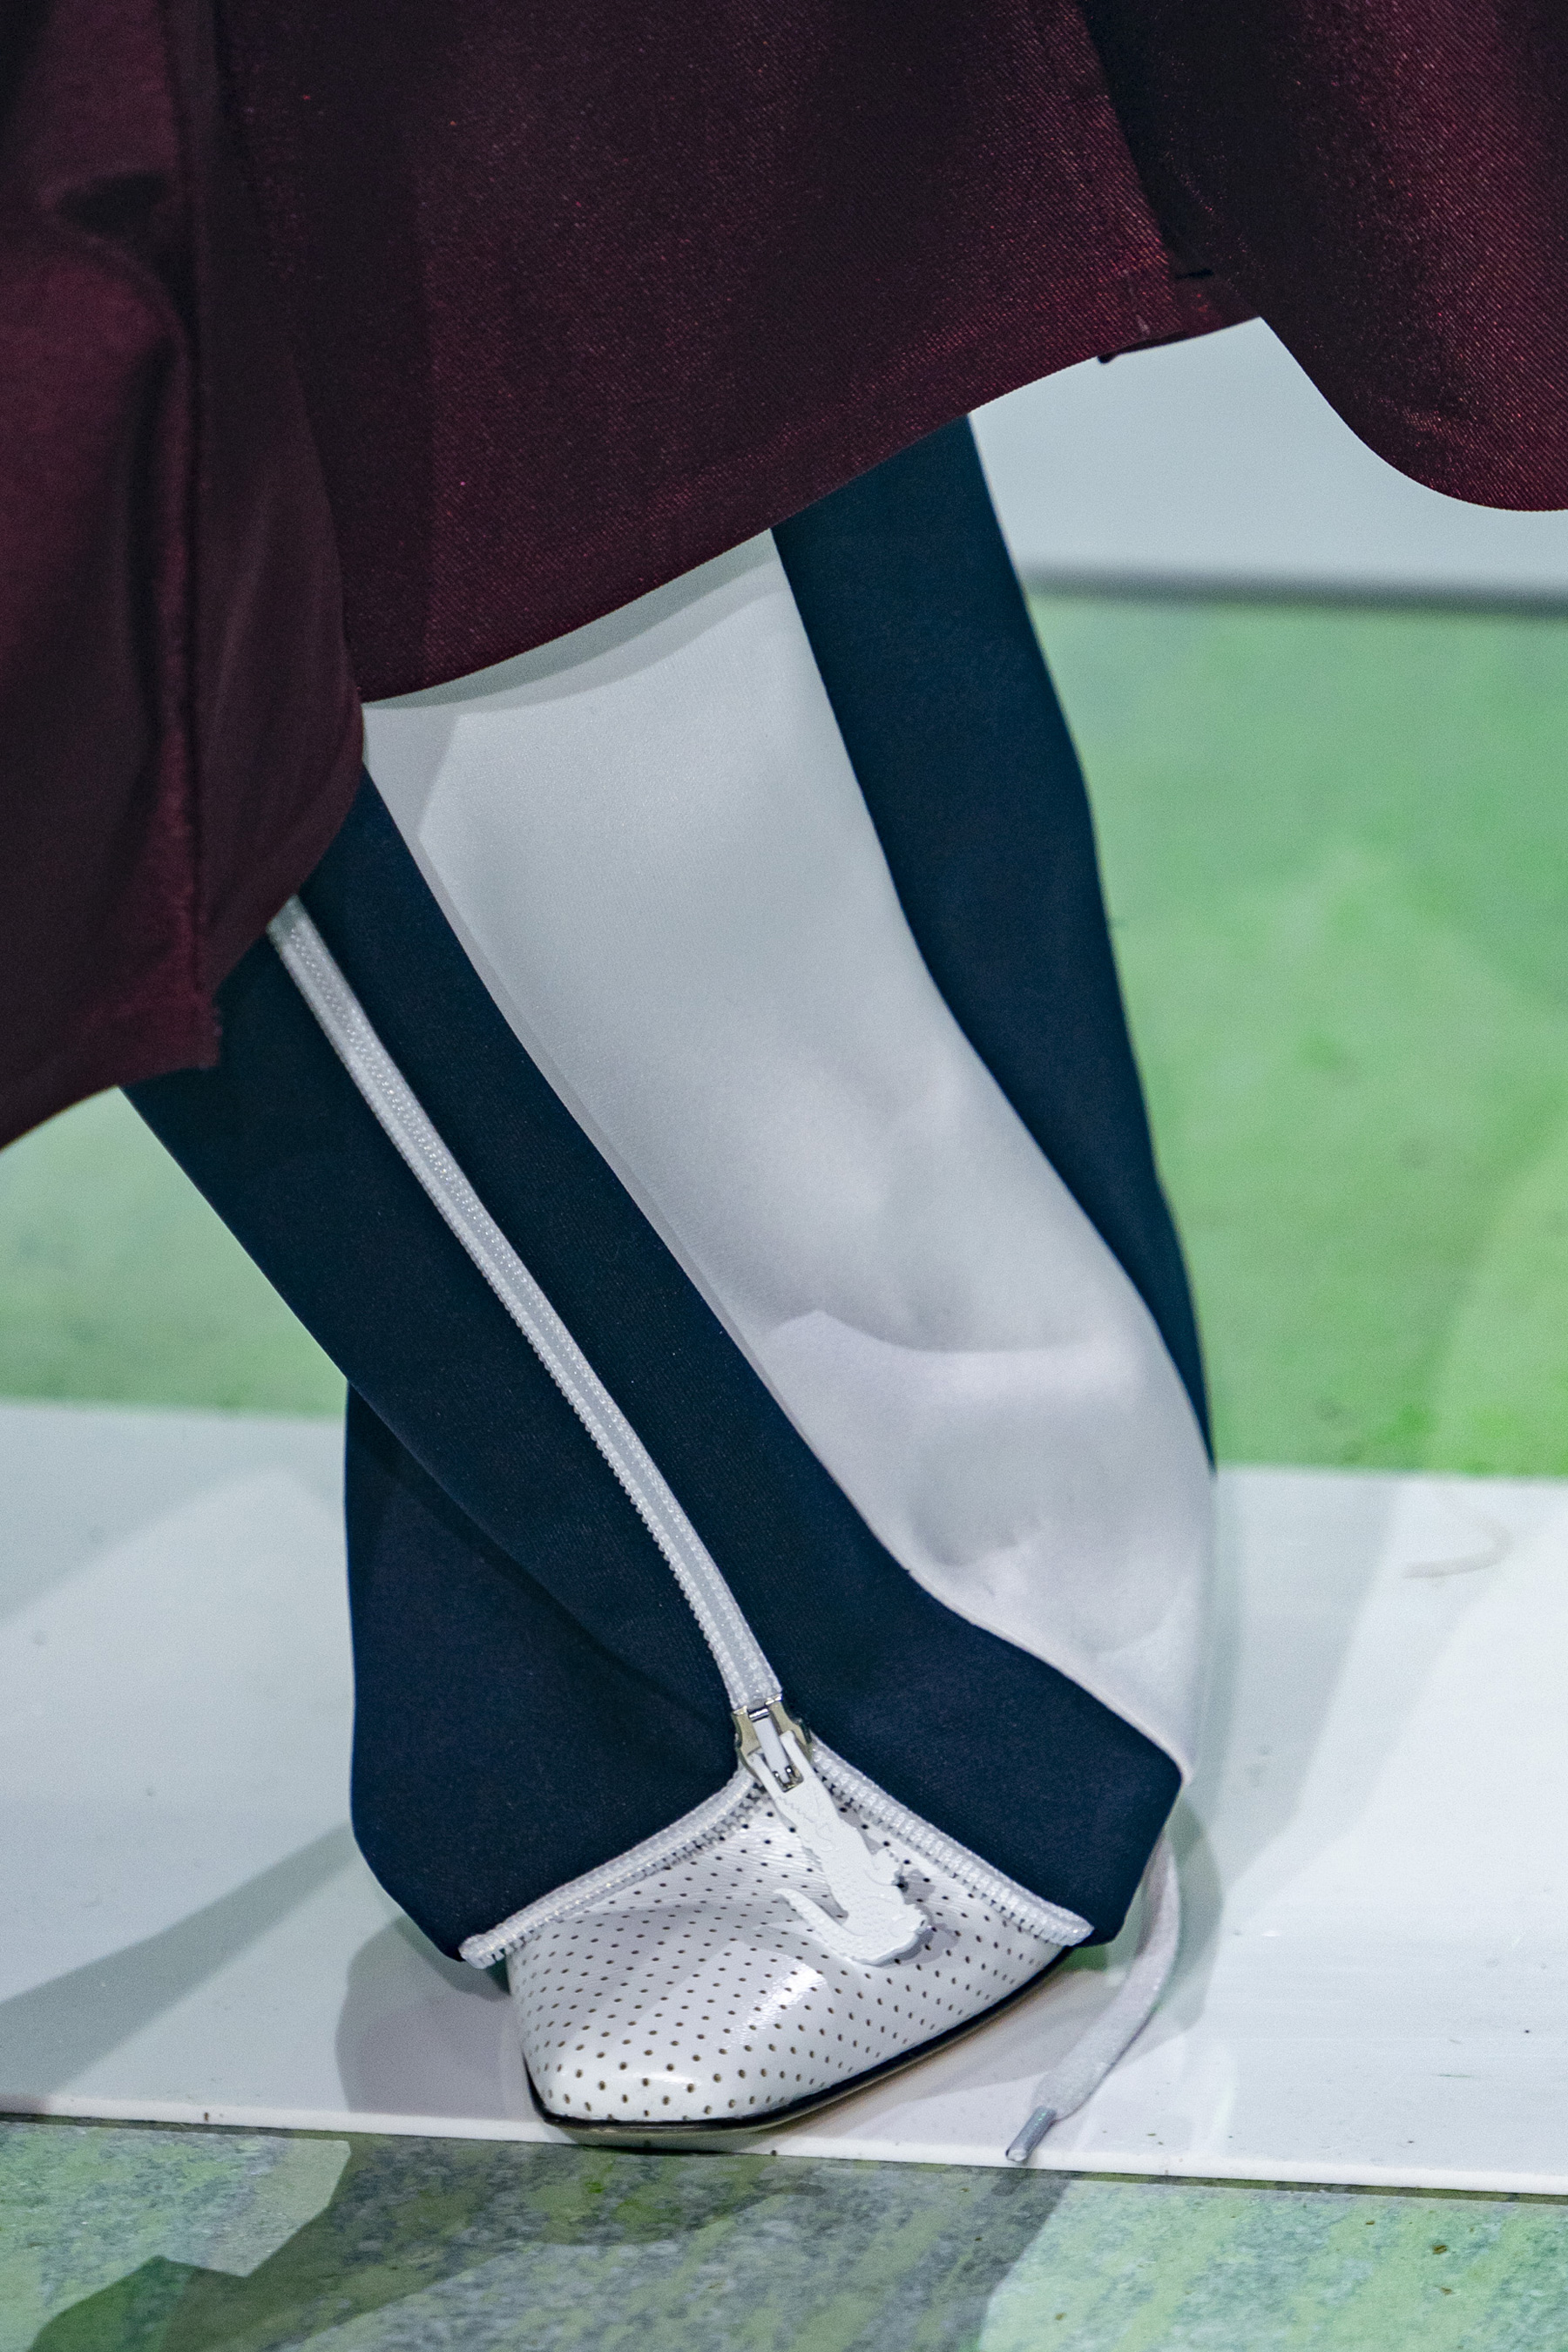 Lacoste Fall 2019 Fashion Show Details